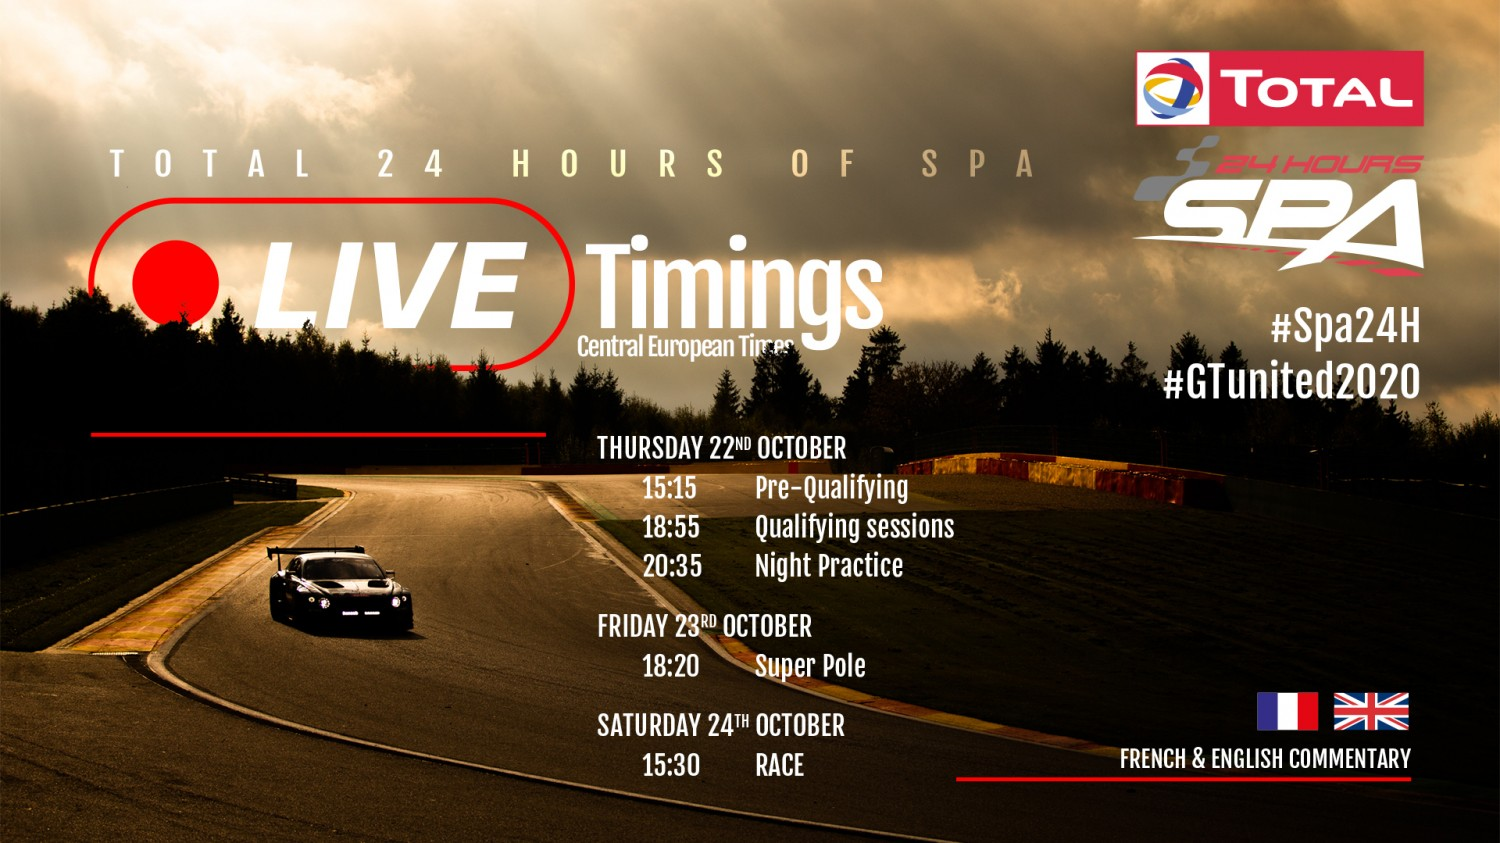 Extensive online and TV coverage takes 2020 Total 24 Hours of Spa to the world